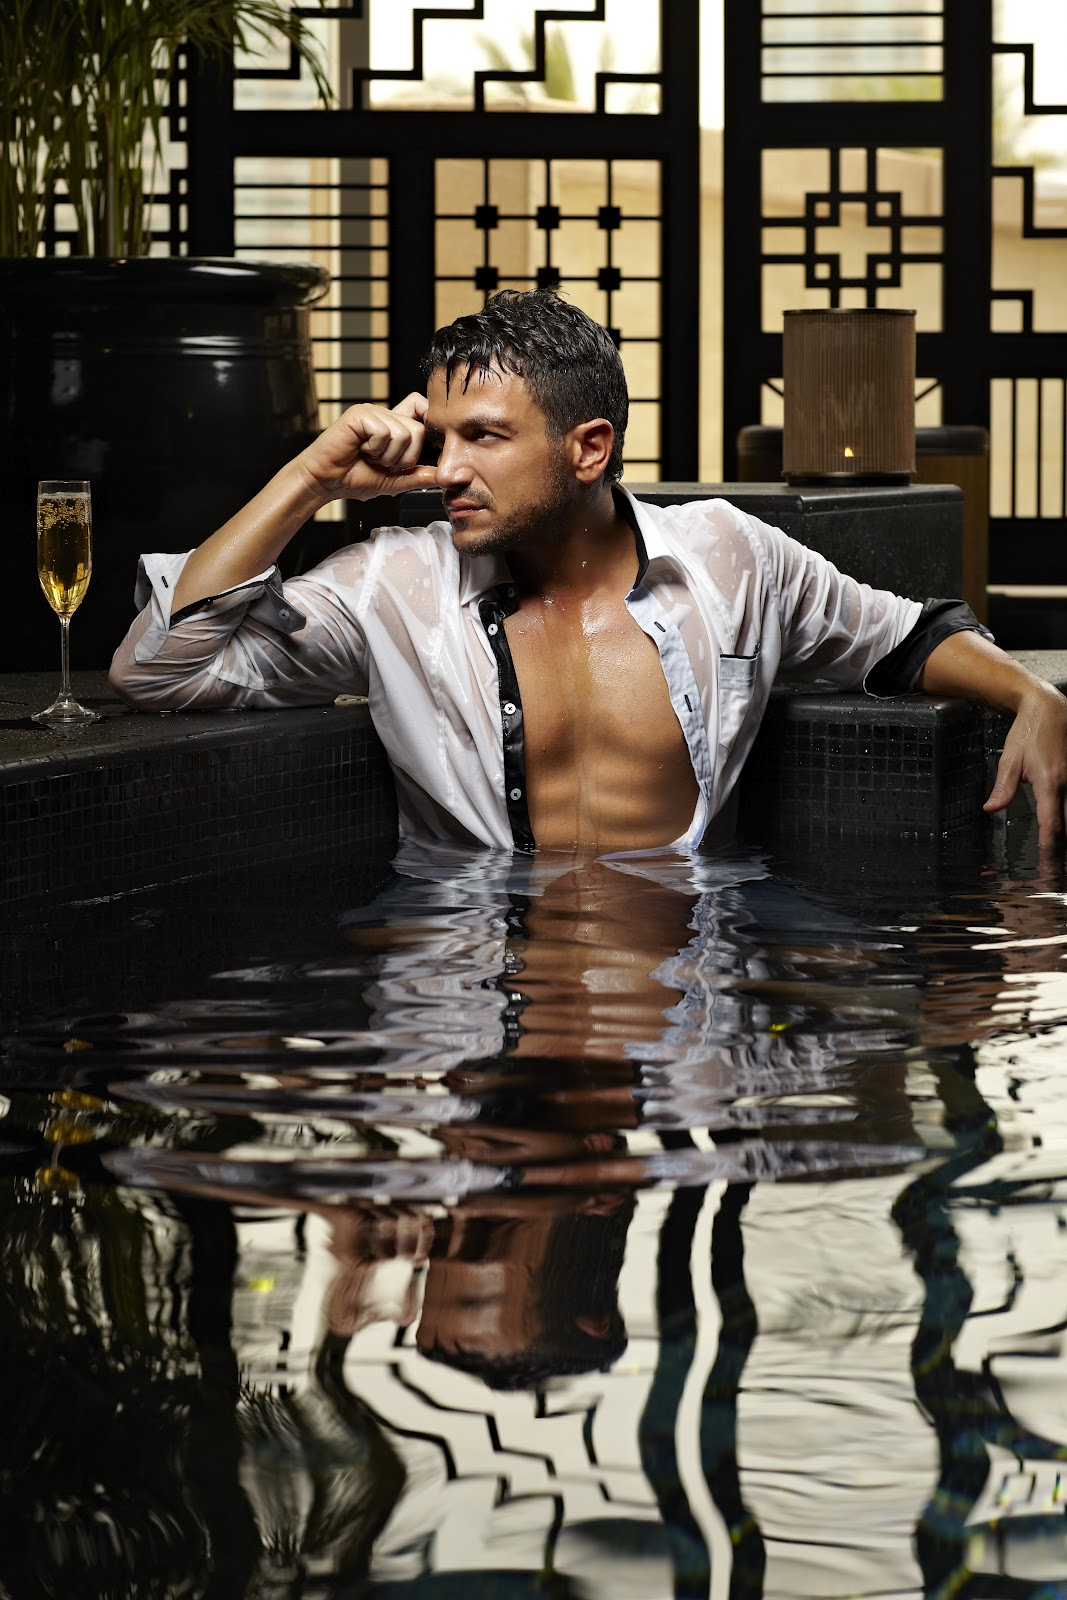 http://3.bp.blogspot.com/-xiFrIVj0HXc/T_VxozwbDtI/AAAAAAAAJwU/3Y3xJnFEYNY/s1600/Peter+Andre+launches+clothing+line+chest+shirt+pool+topless.JPG